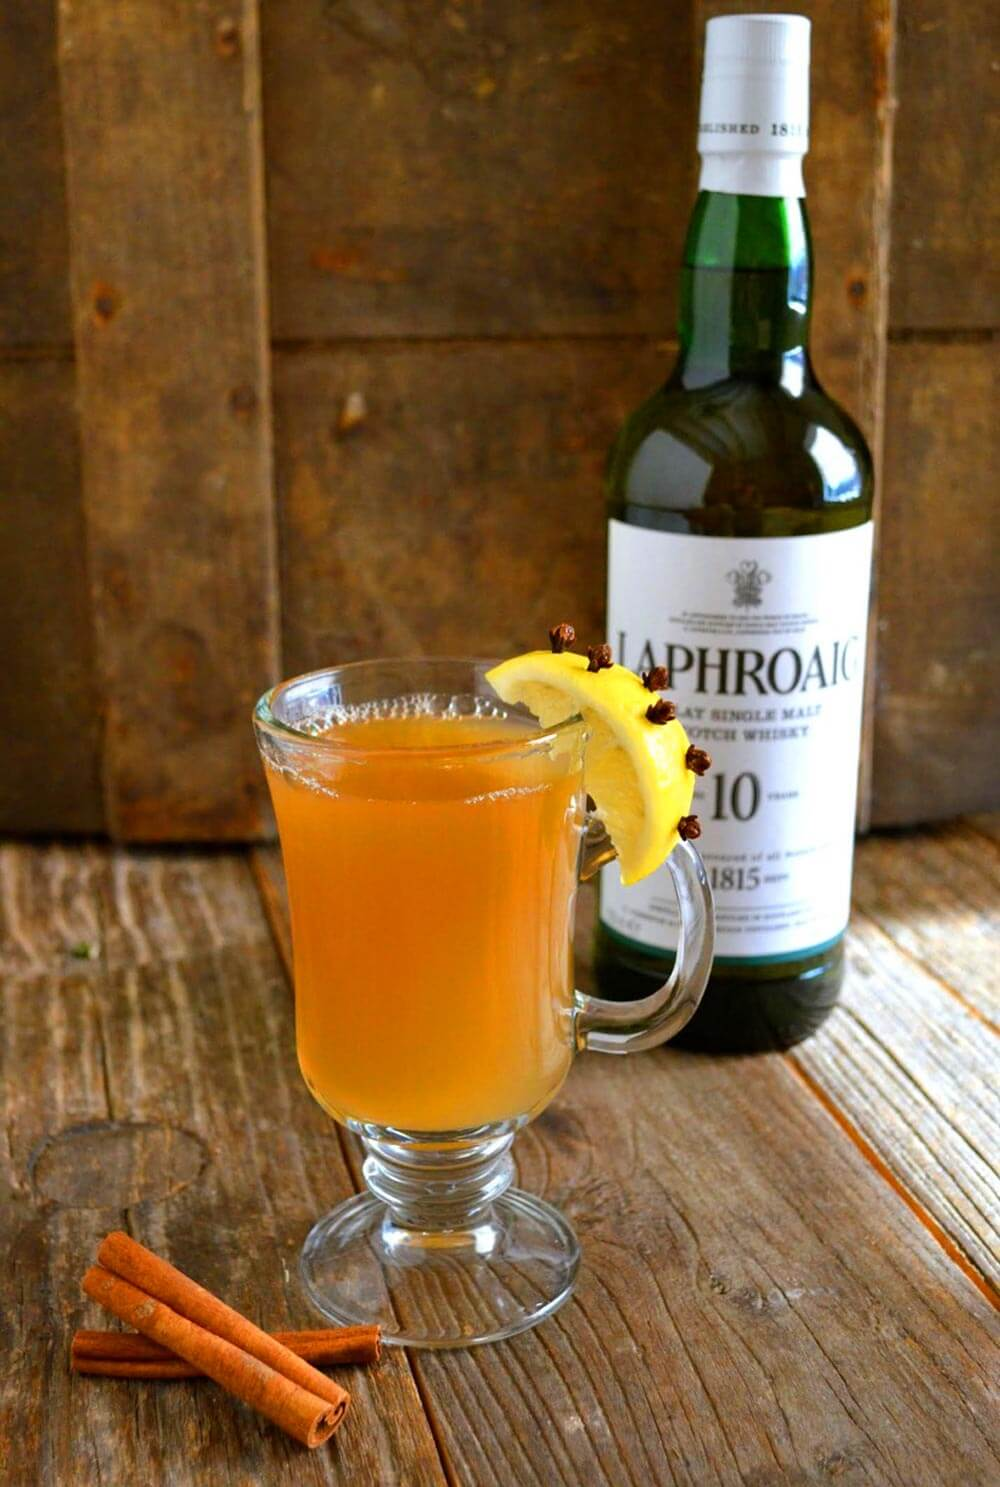 Laphroaig cocktail recipe, Feast Toddy